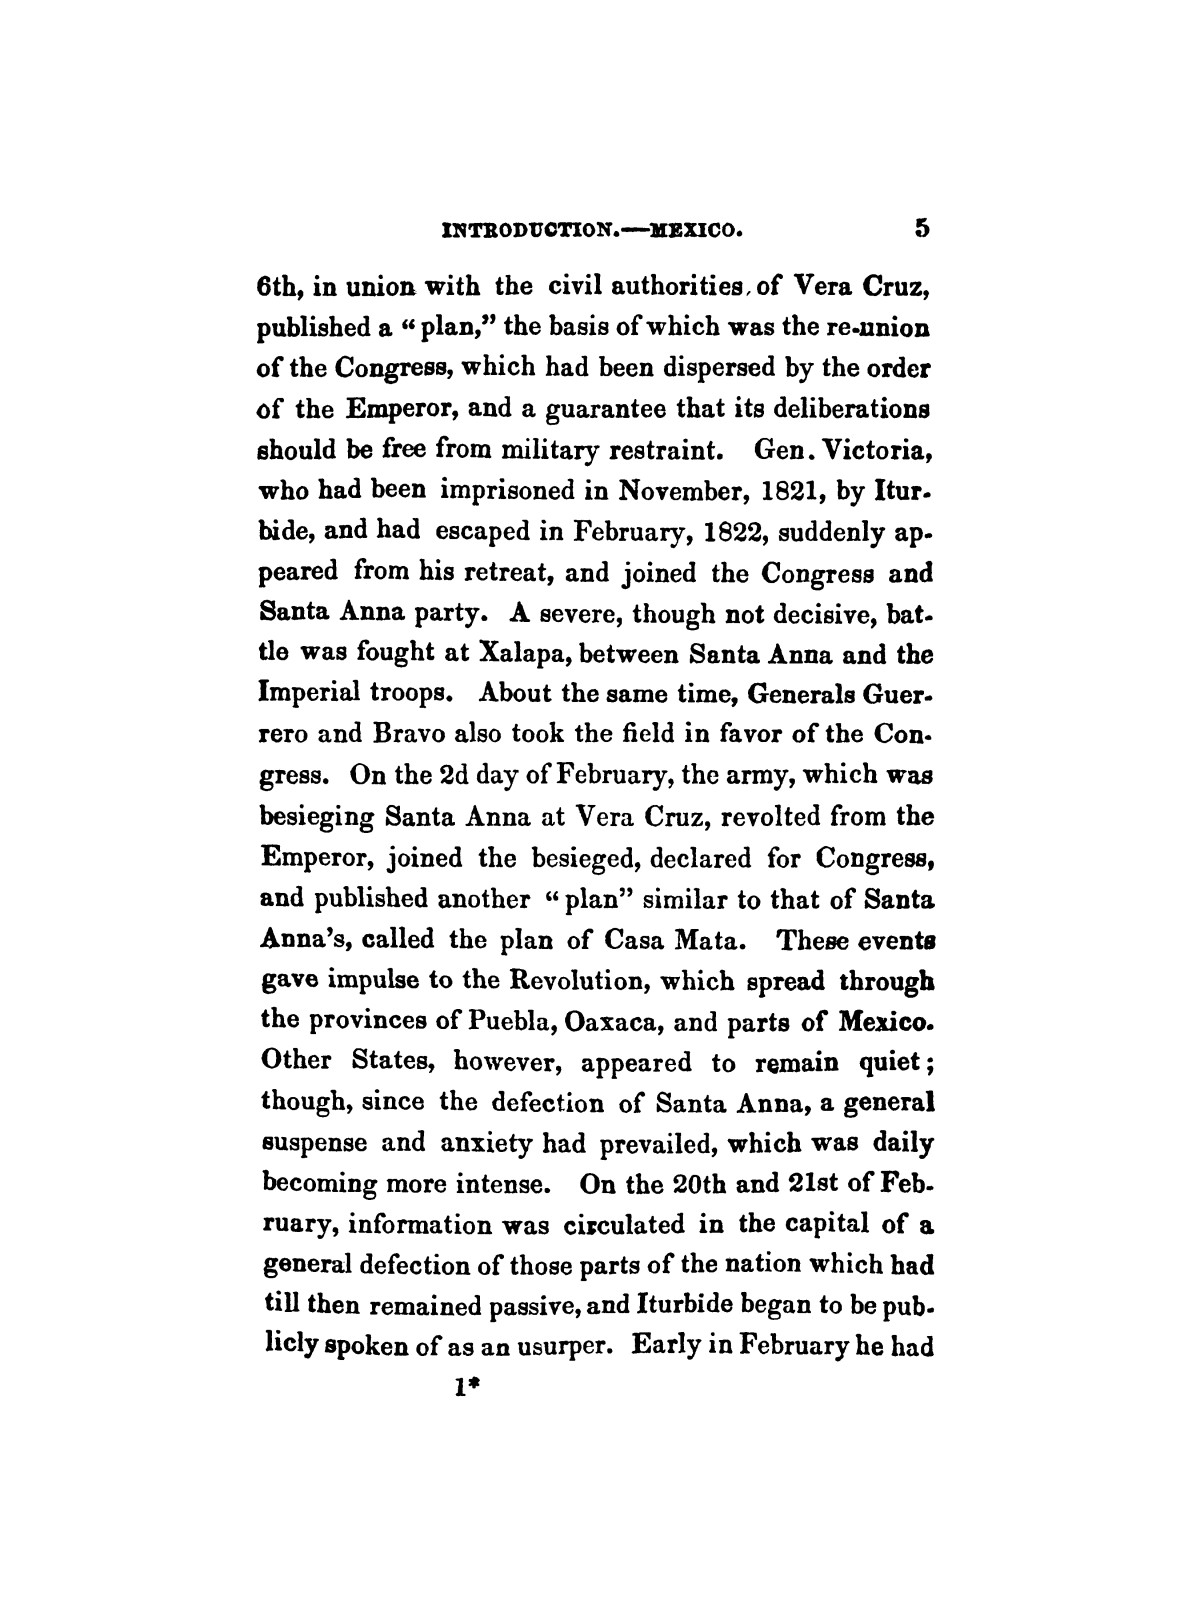 History of the revolution in Texas, particularly of the war of 1835 & '36; together with the latest geographical, topographical, and statistical accounts of the country, from the most authentic sources. Also, an appendix. By the Rev. C. Newell.                                                                                                      [Sequence #]: 17 of 227